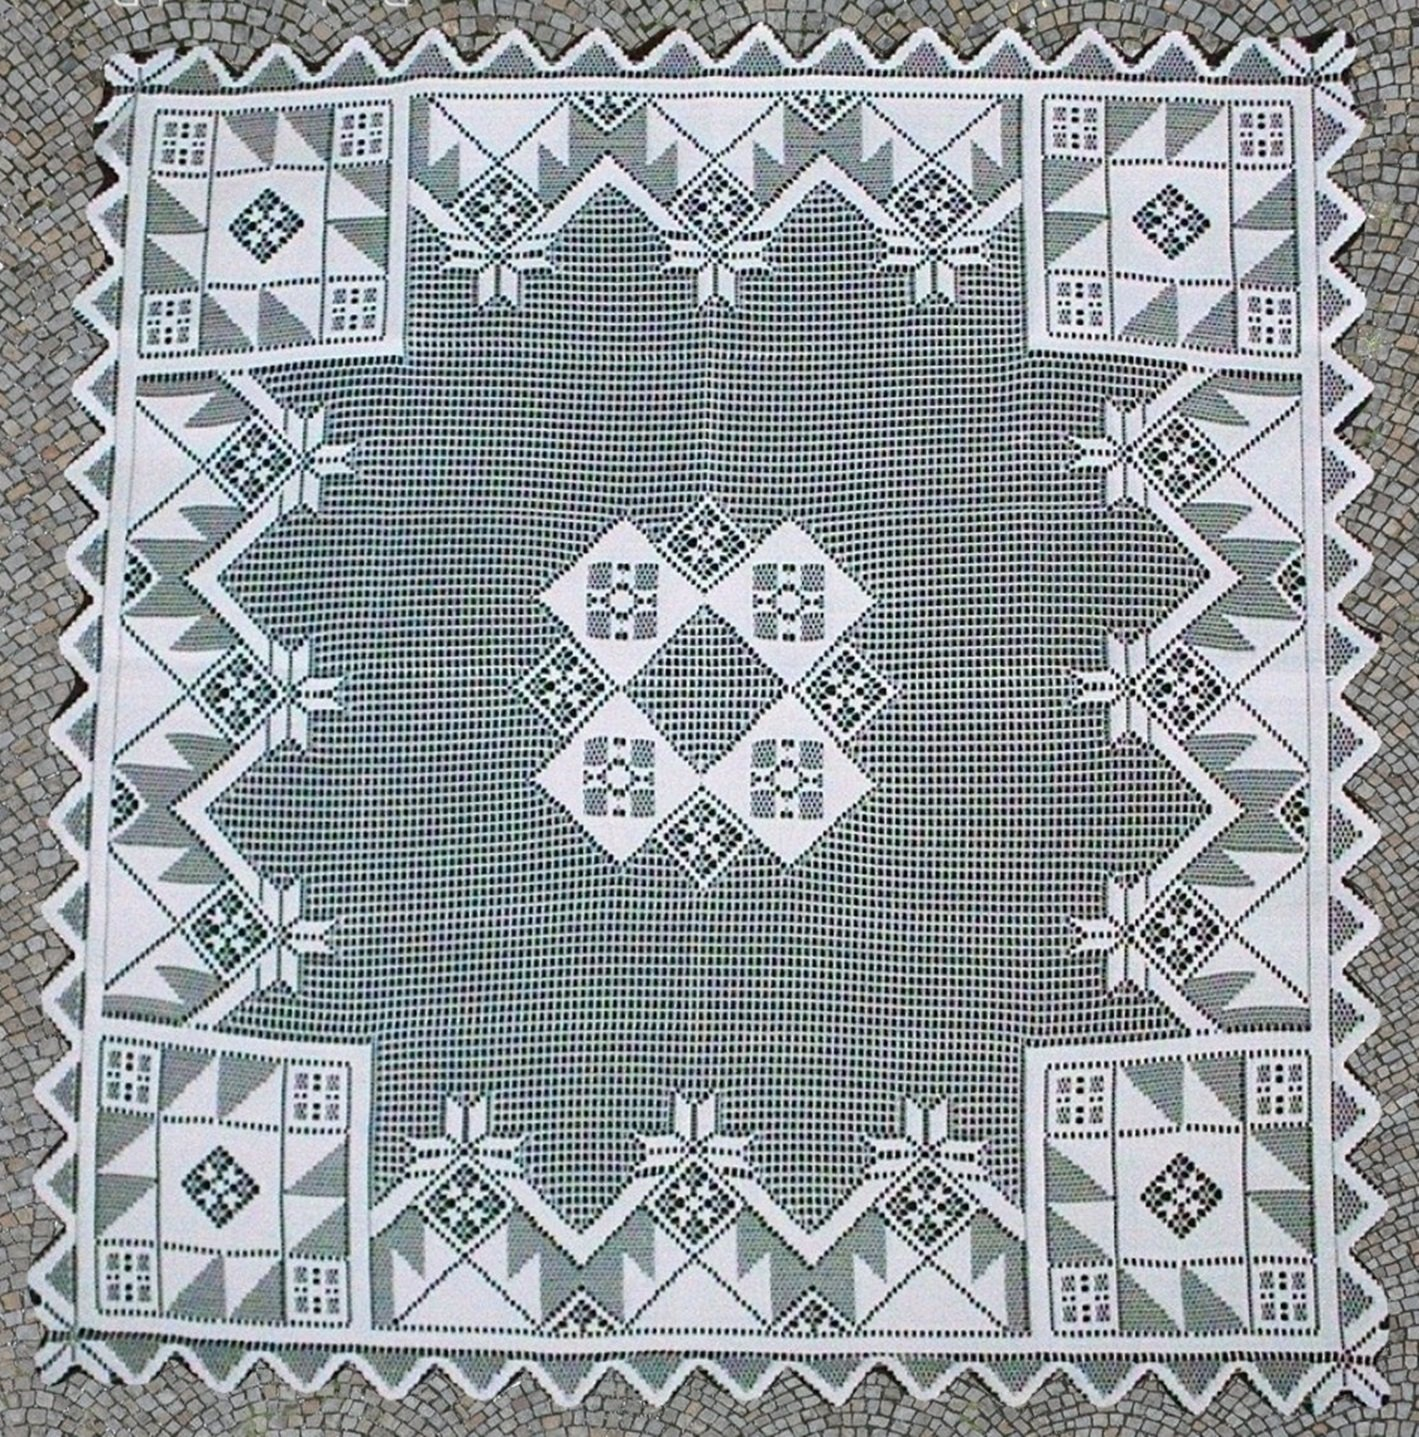 Quilt Patch Square Table Topper 40x40 White Oxford House